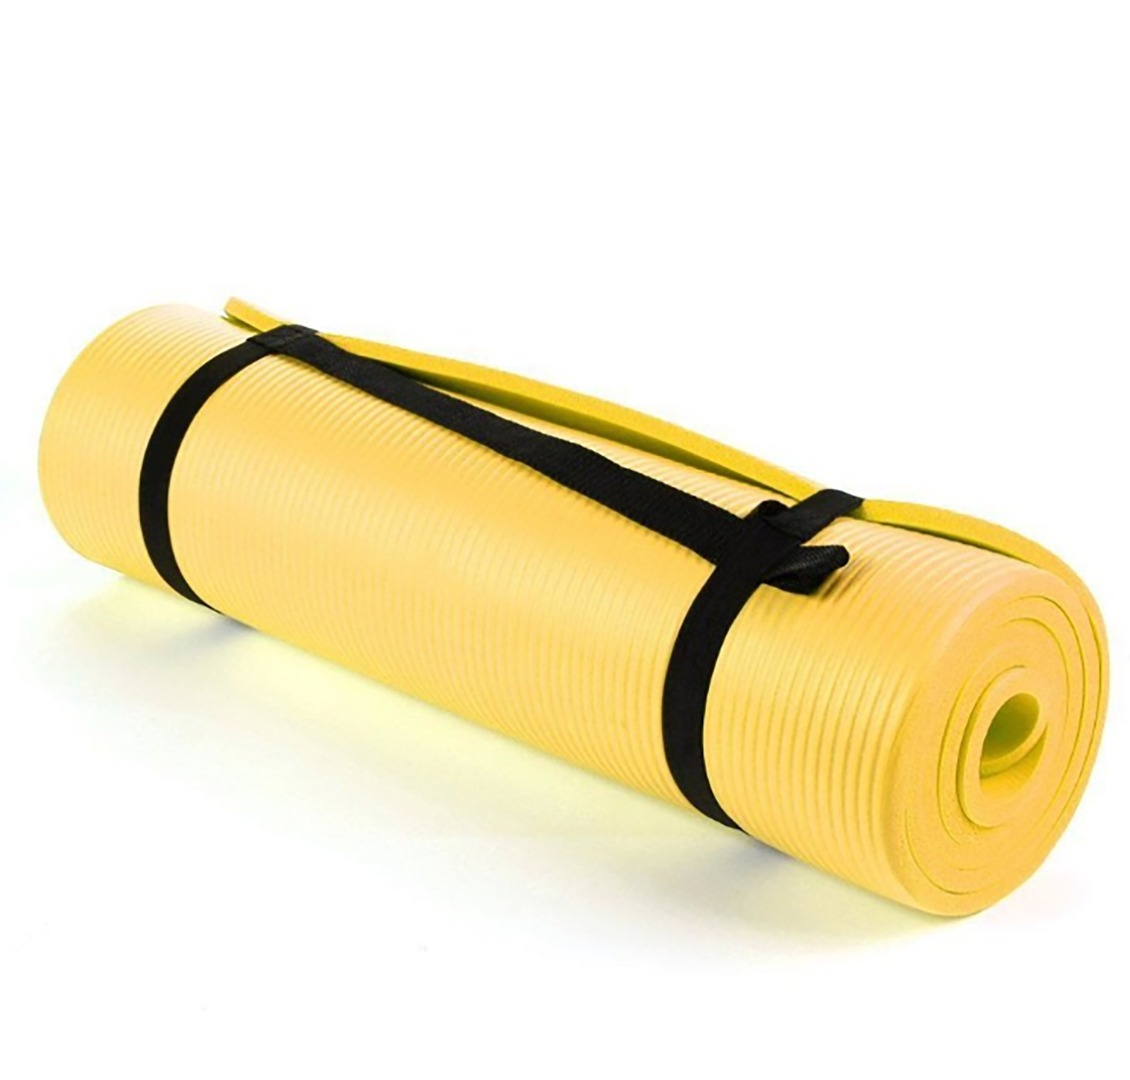 NBR Yellow 15mm Thick Exercise Fitness Gym Yoga Mat 190cm x 60cm